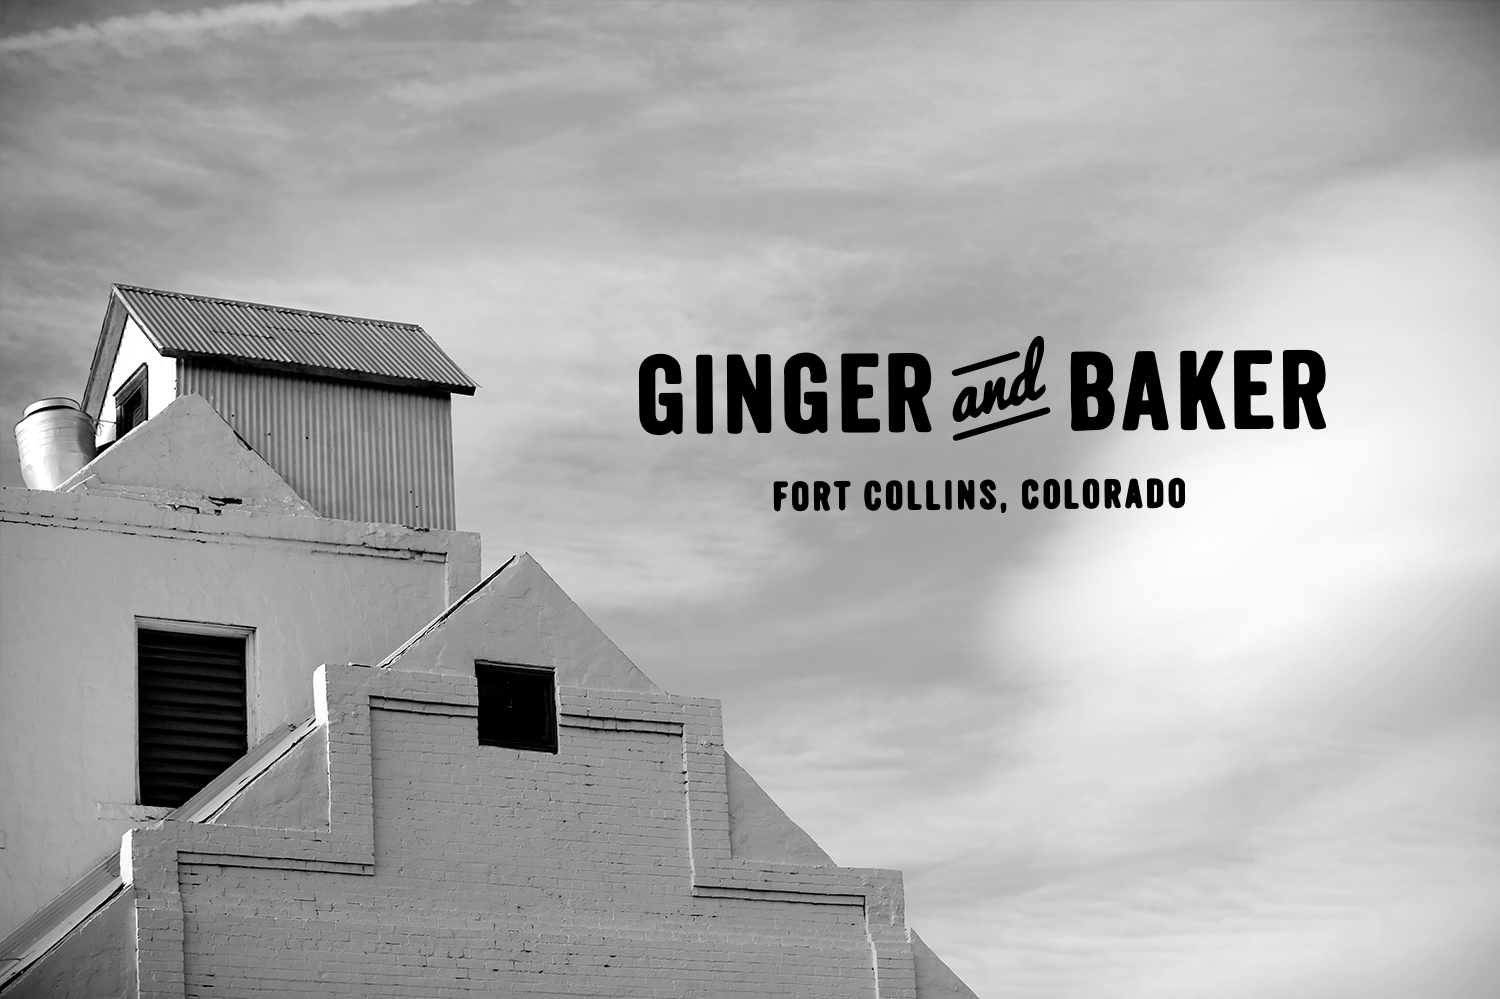 custom website design for ginger and baker